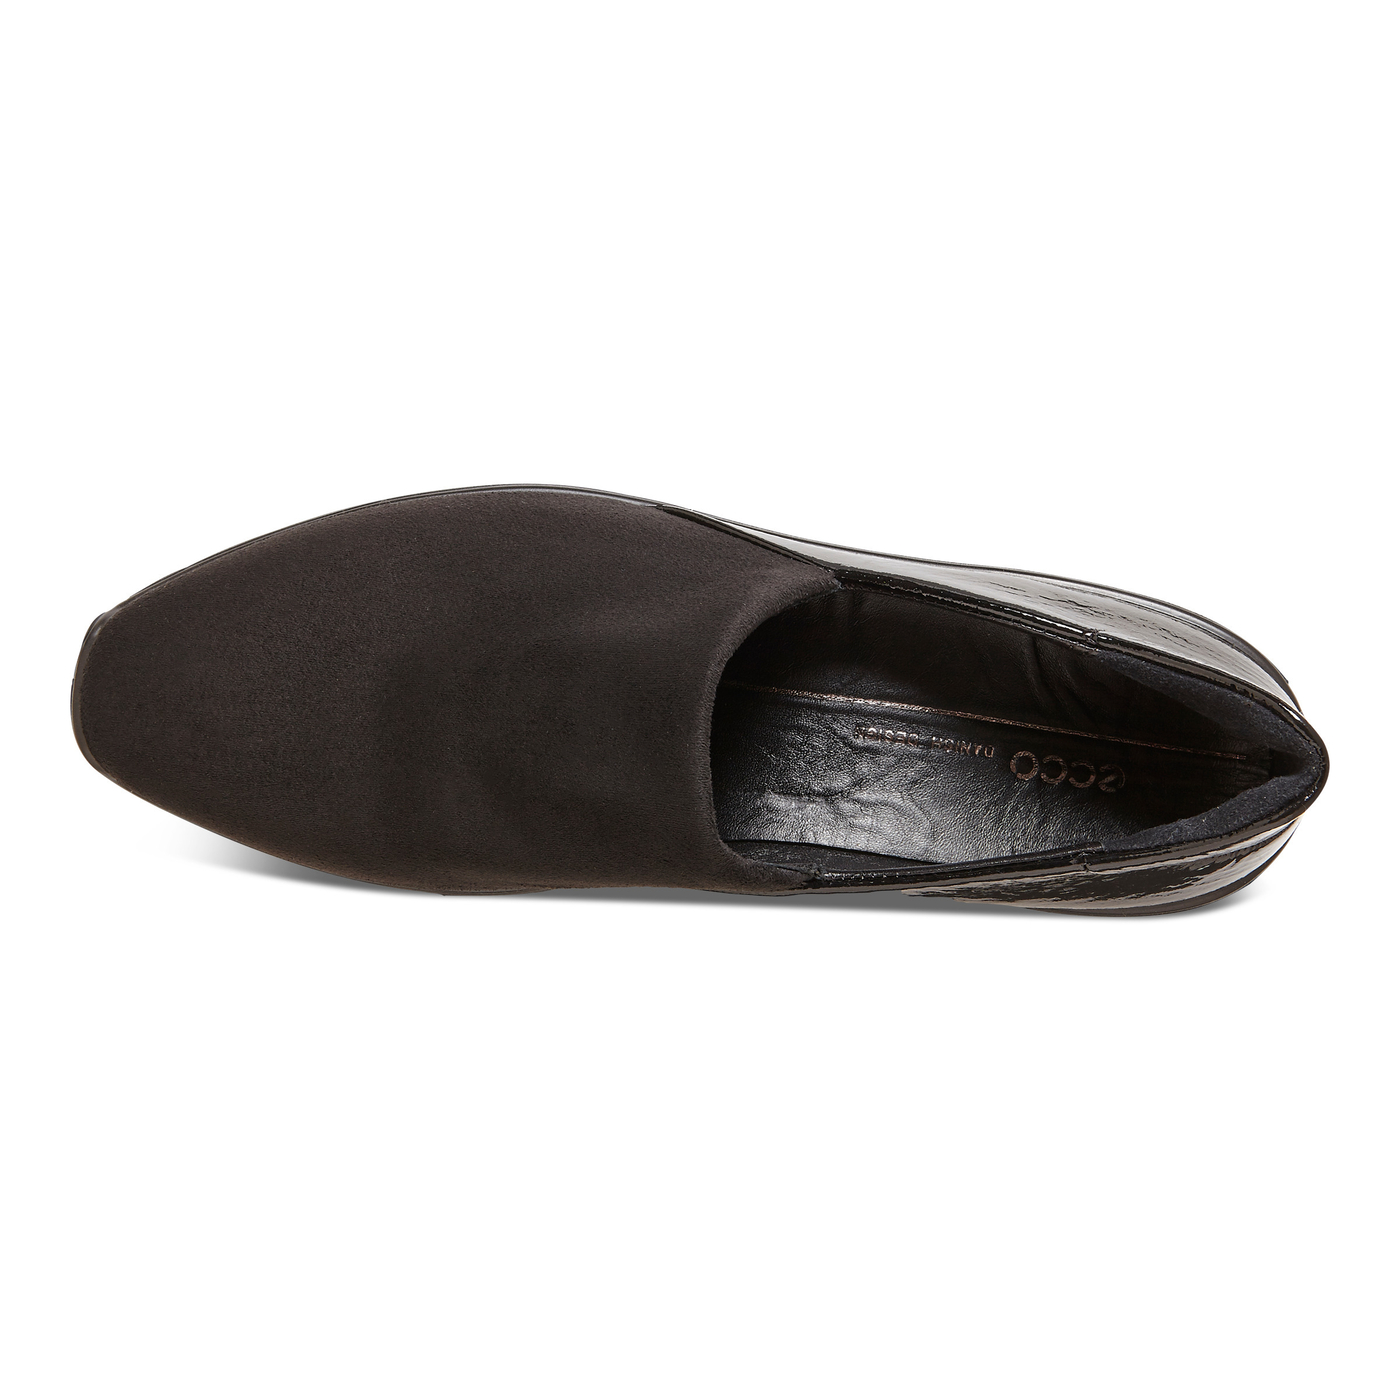 ECCO Incise Urban Slip On